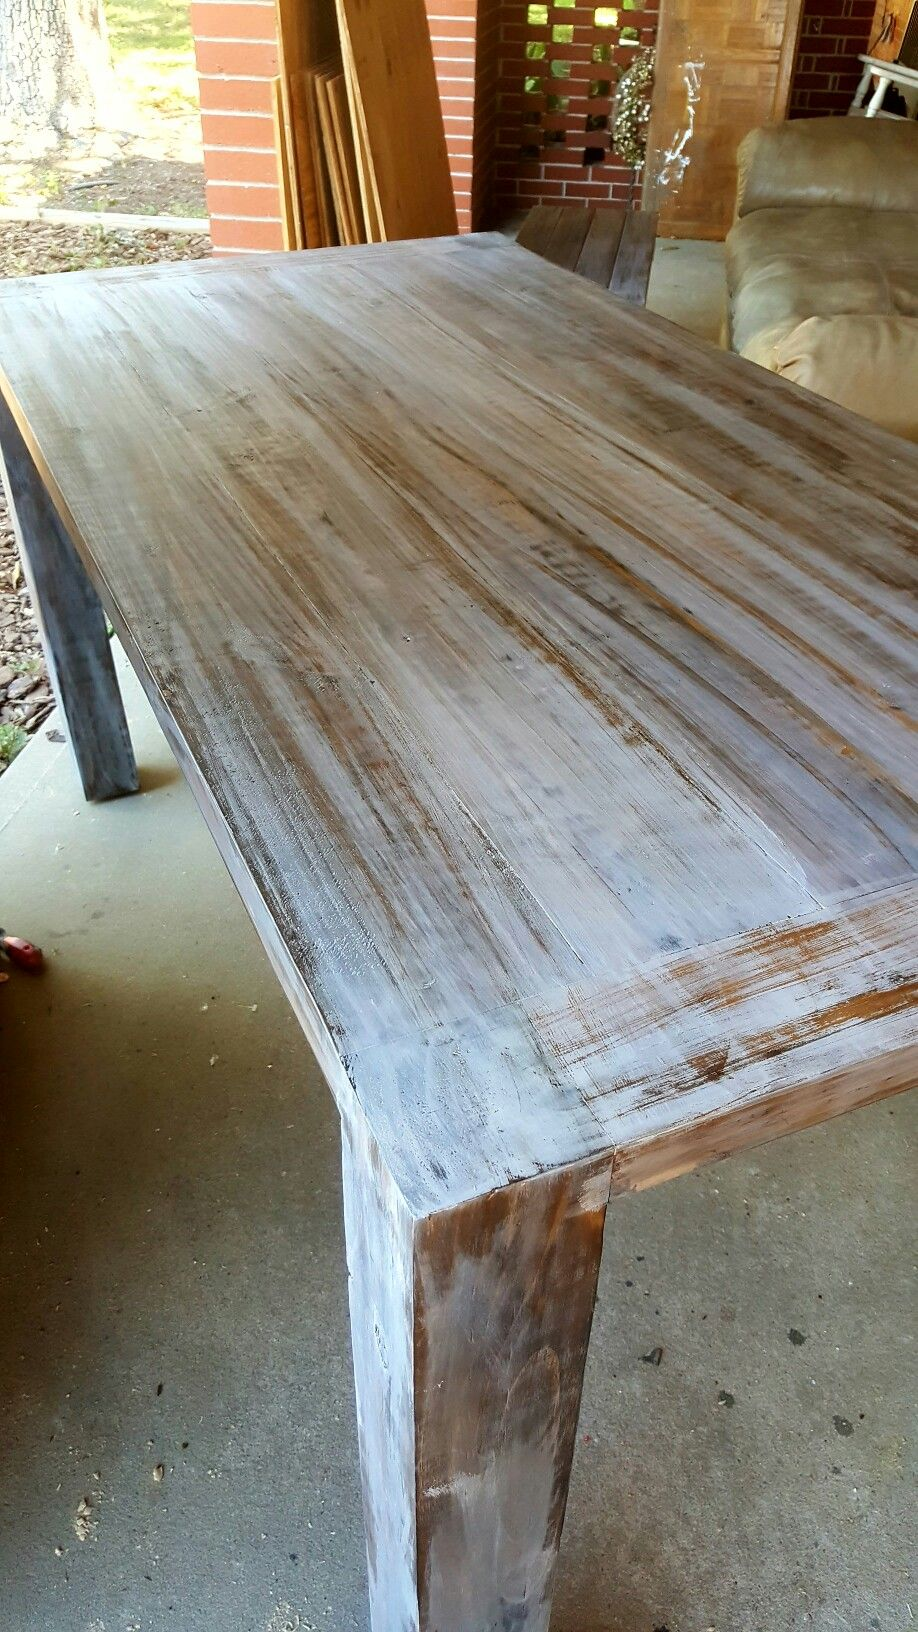 Pop White Wash Pickle On Your Dry Dark Stain Looks Awesome